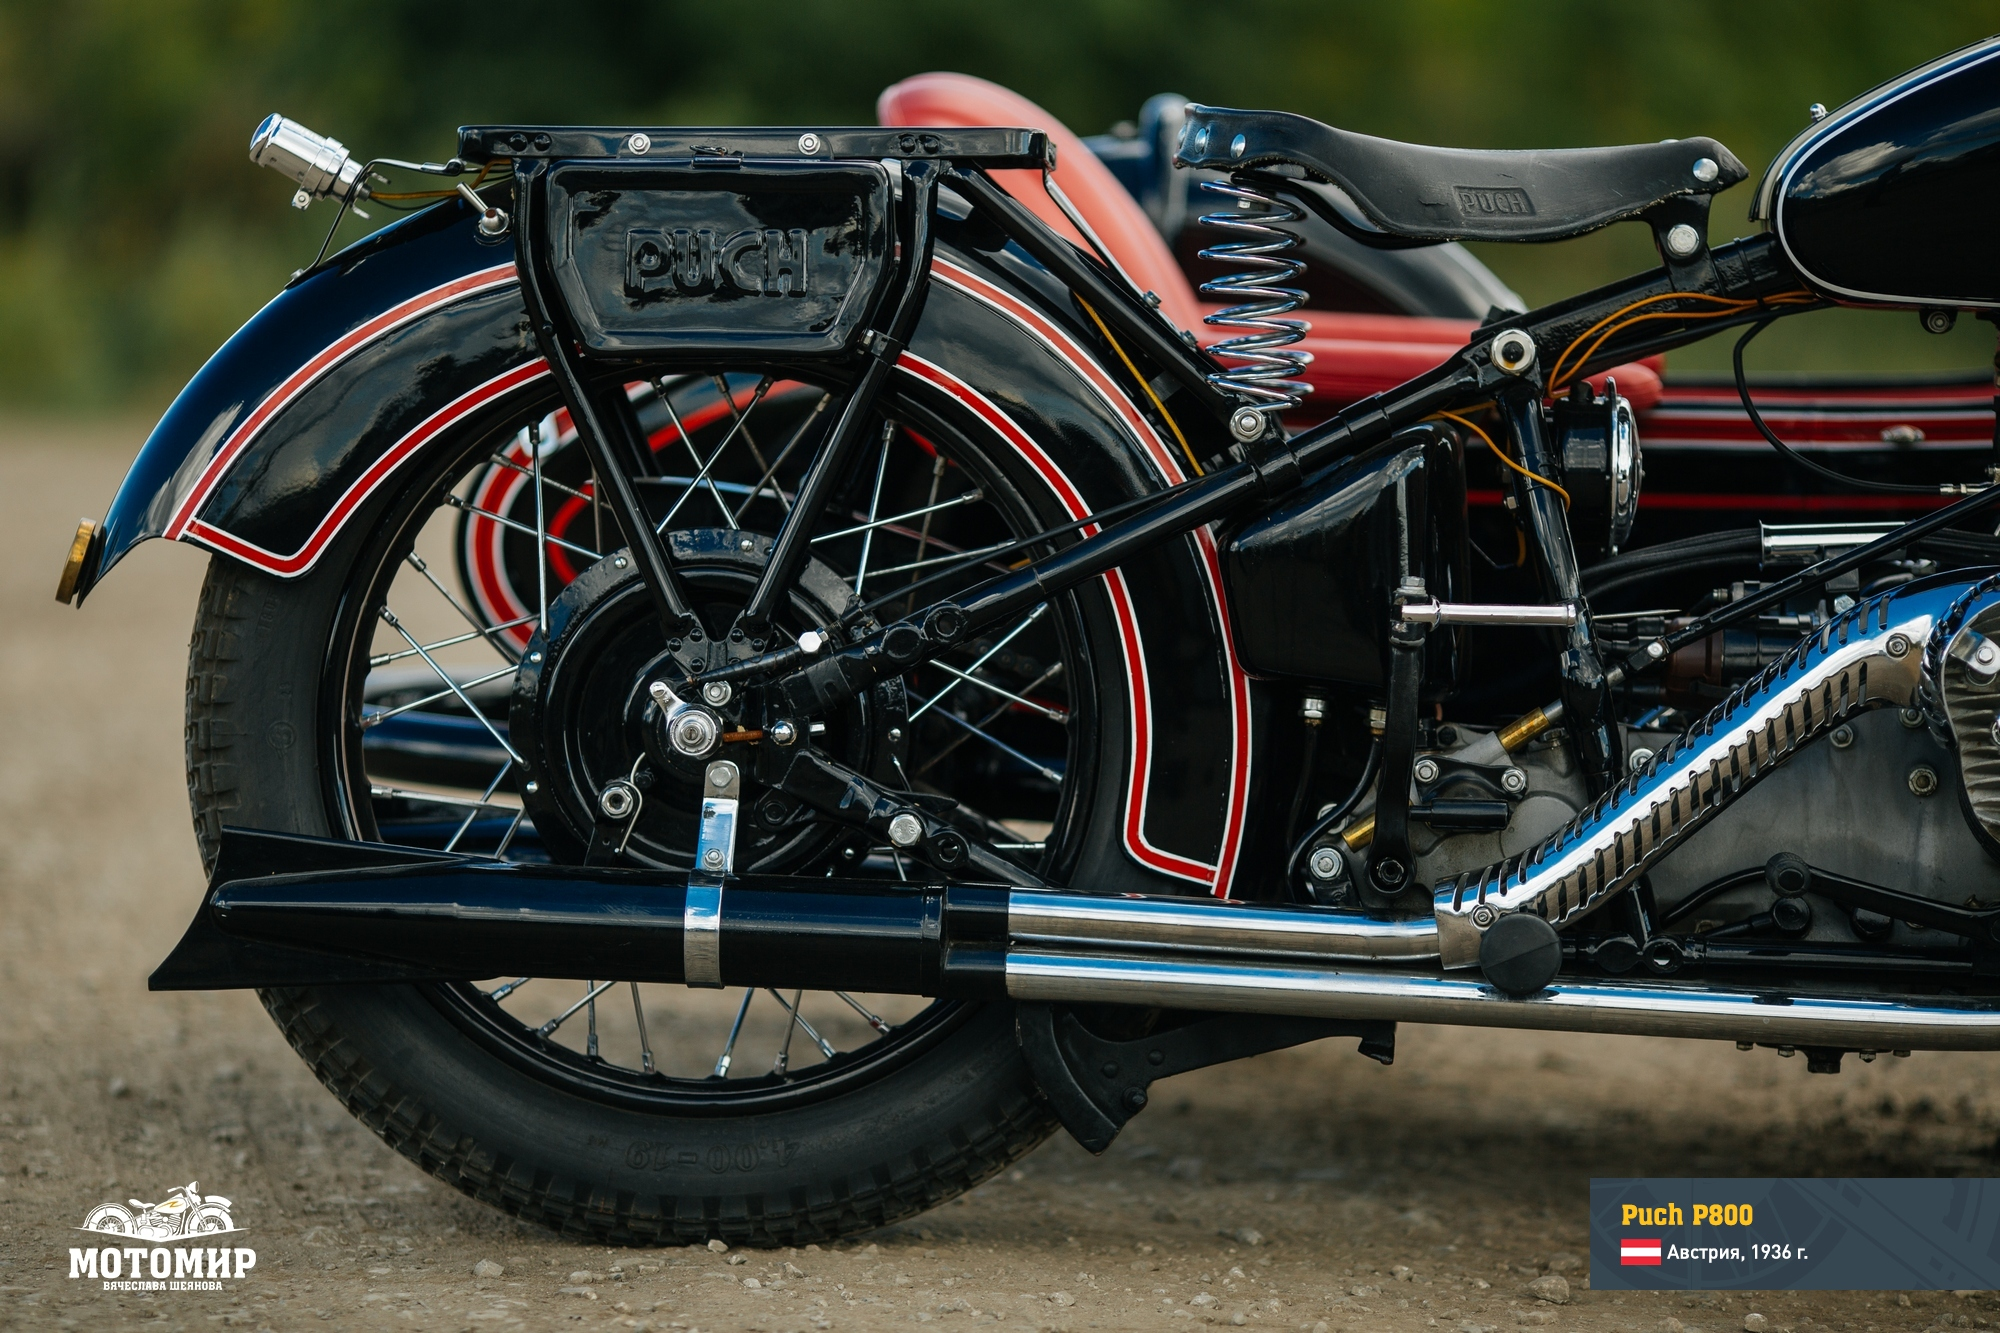 puch-p800-201510-web-11